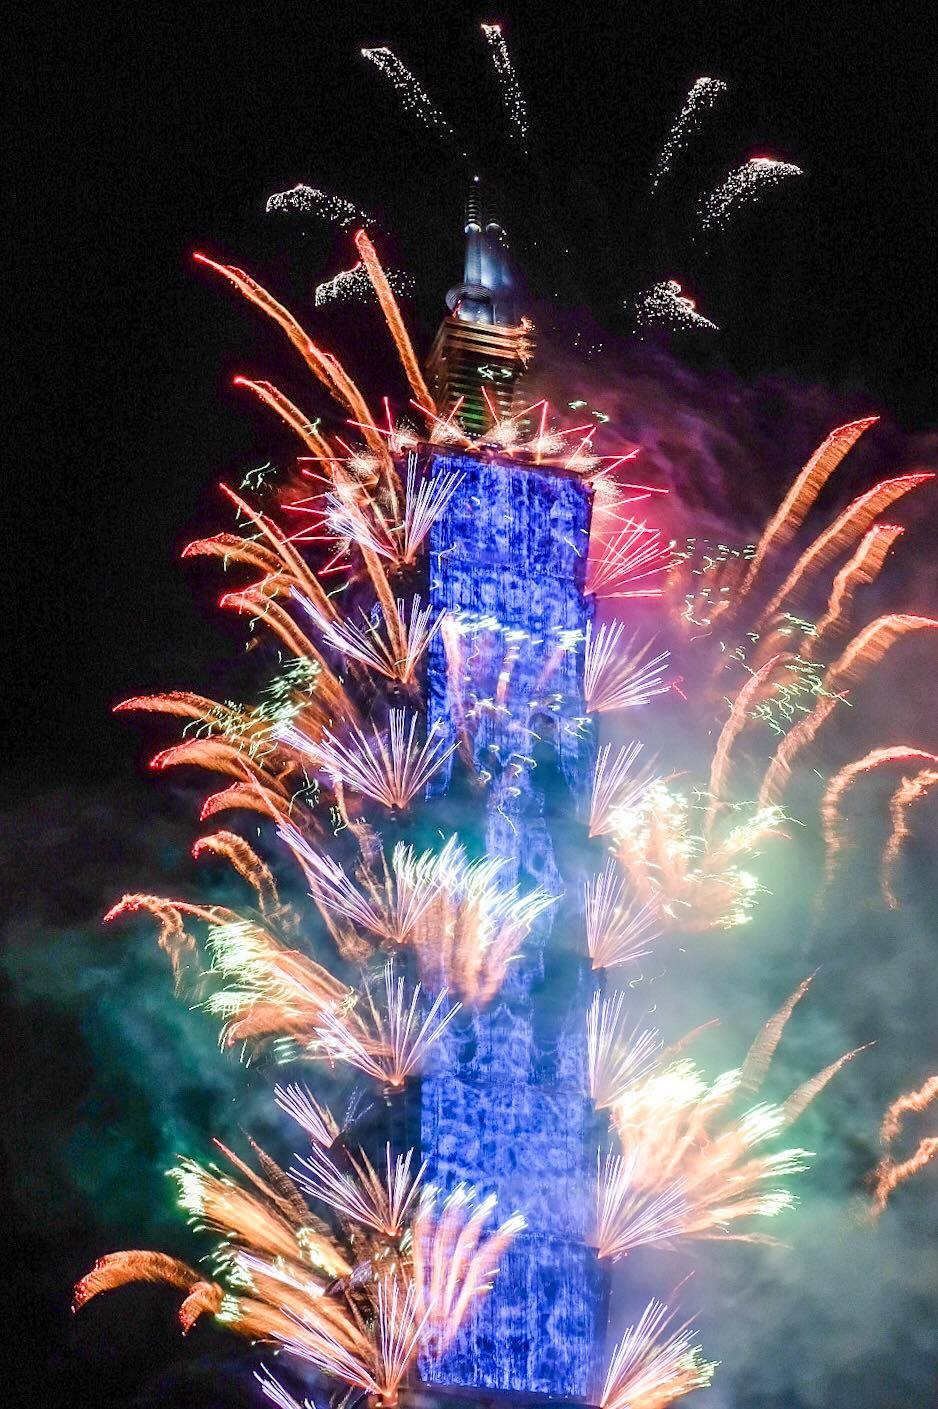 Taipei 101 New Year's Eve fireworks display, festivities to be expanded